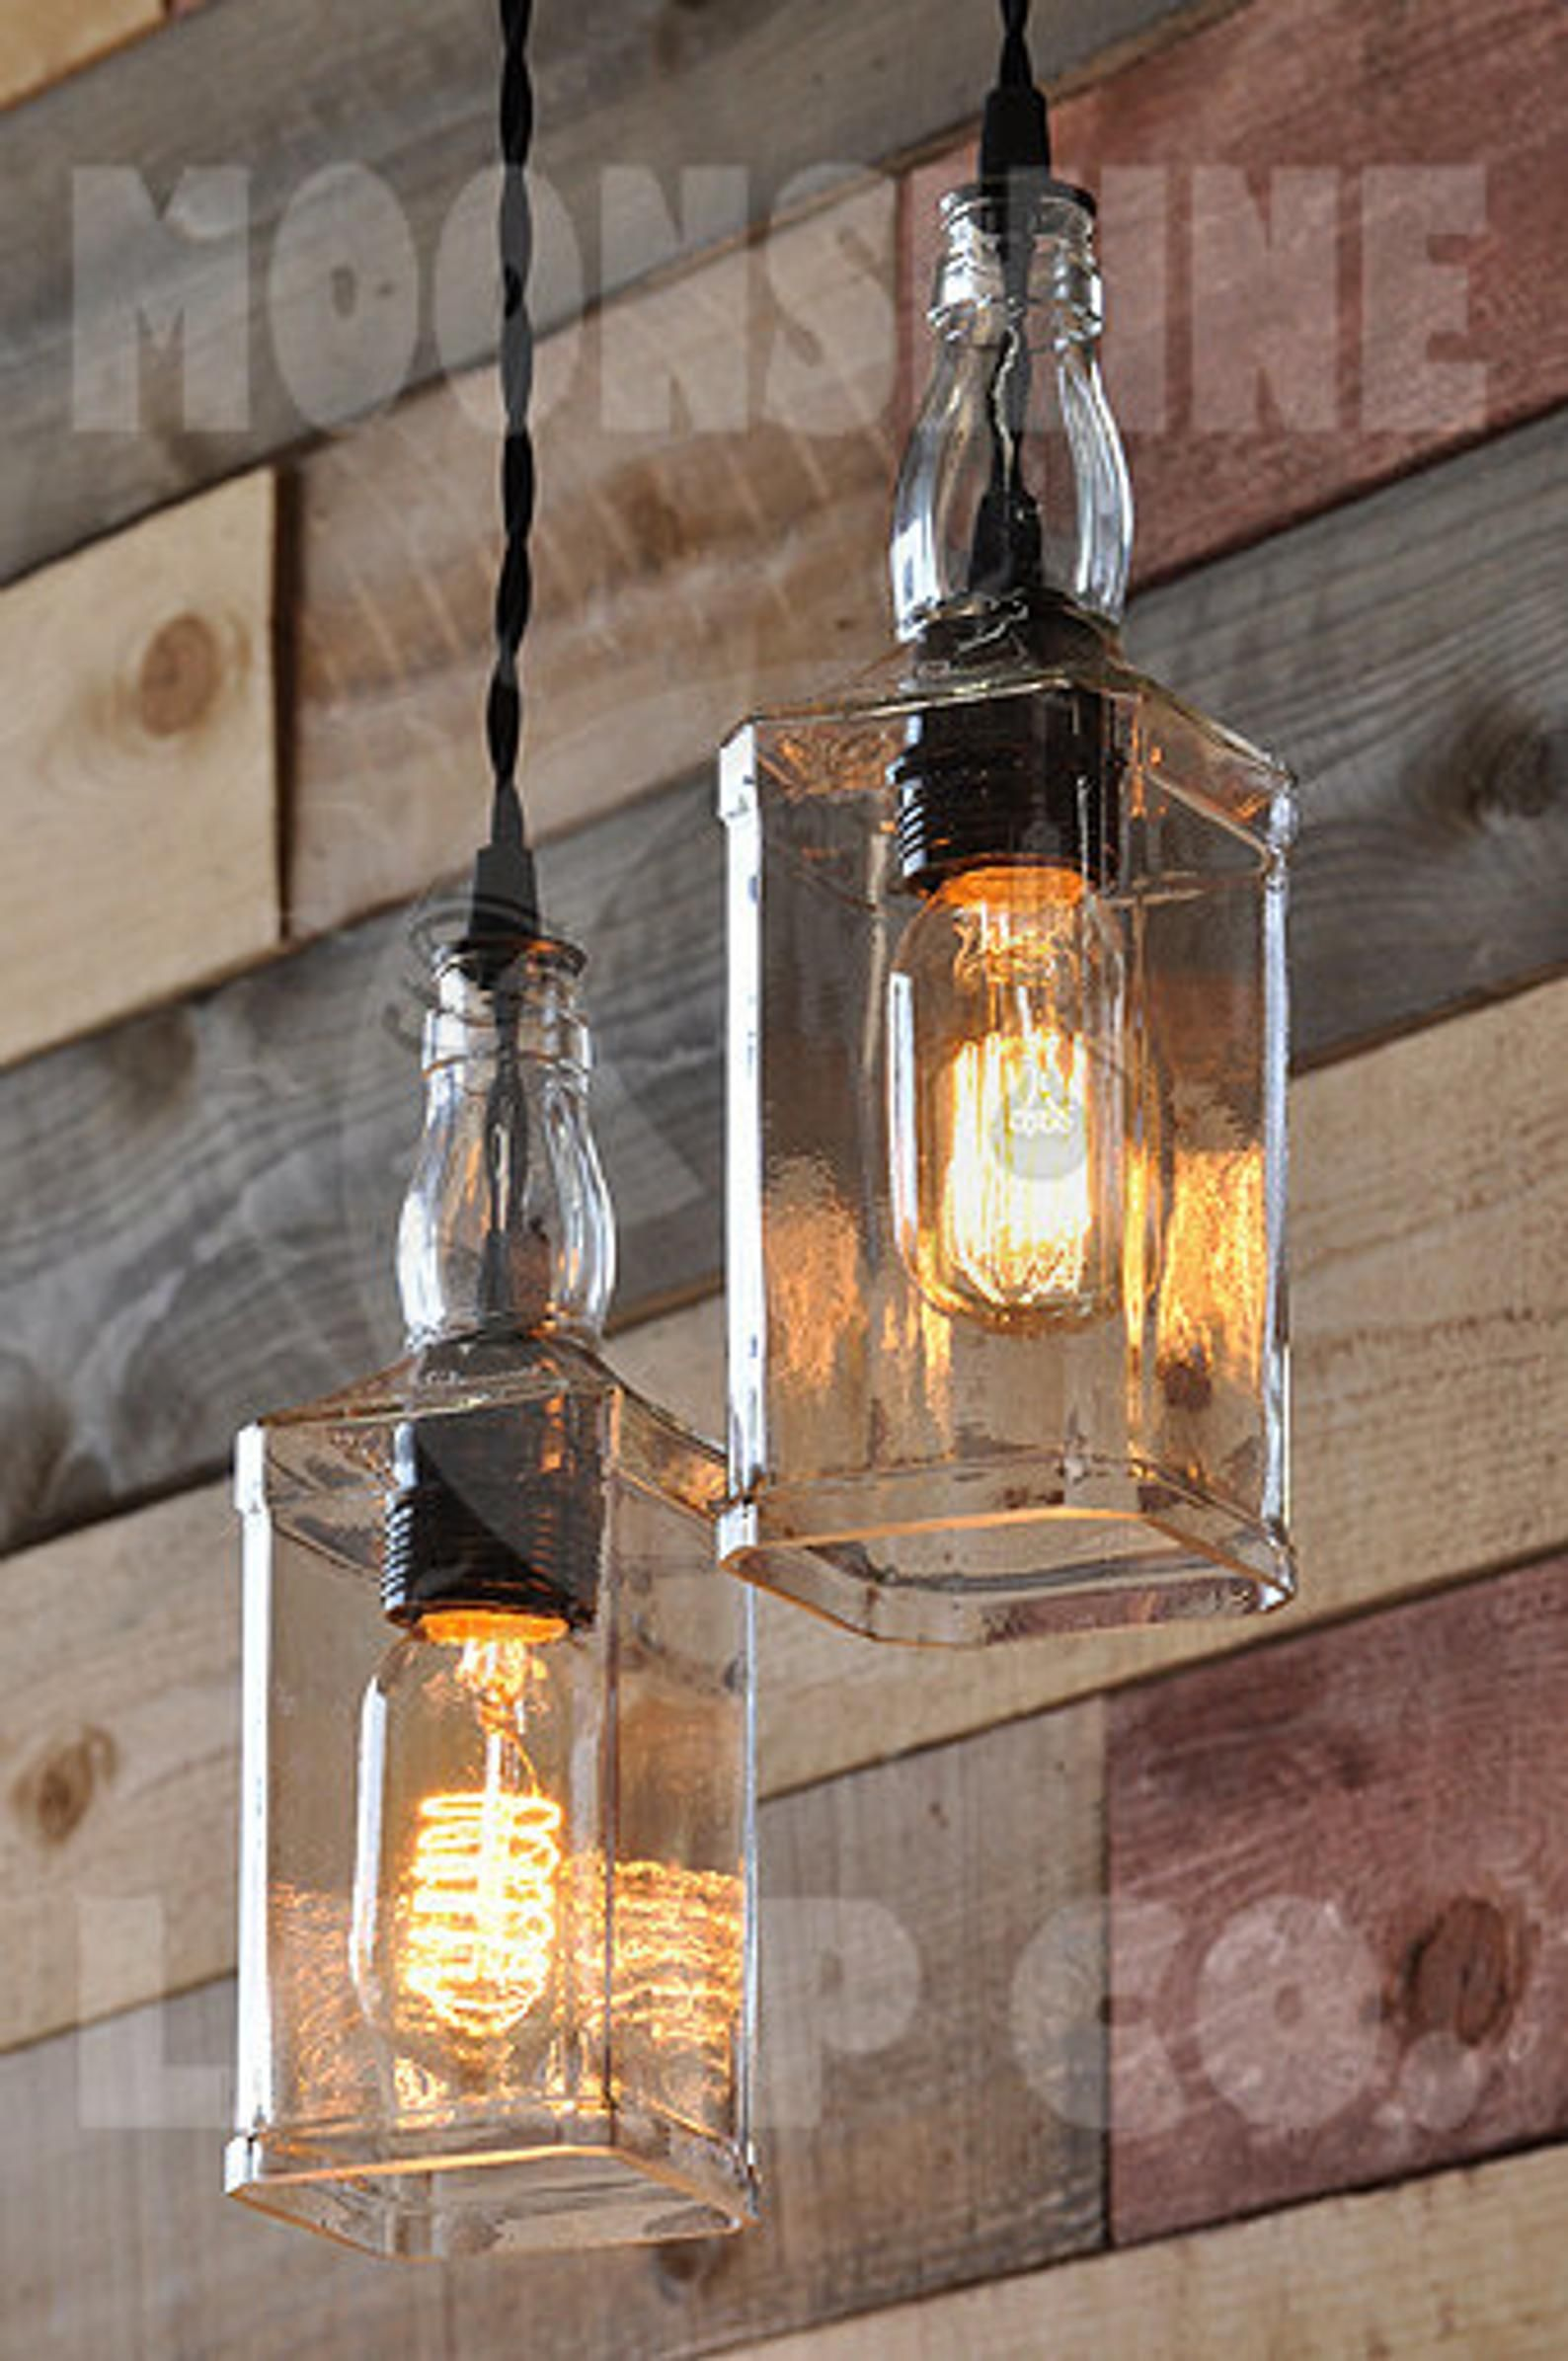 The Warehouser Rustic Farmhouse Pendant Chandelier Pulley ...